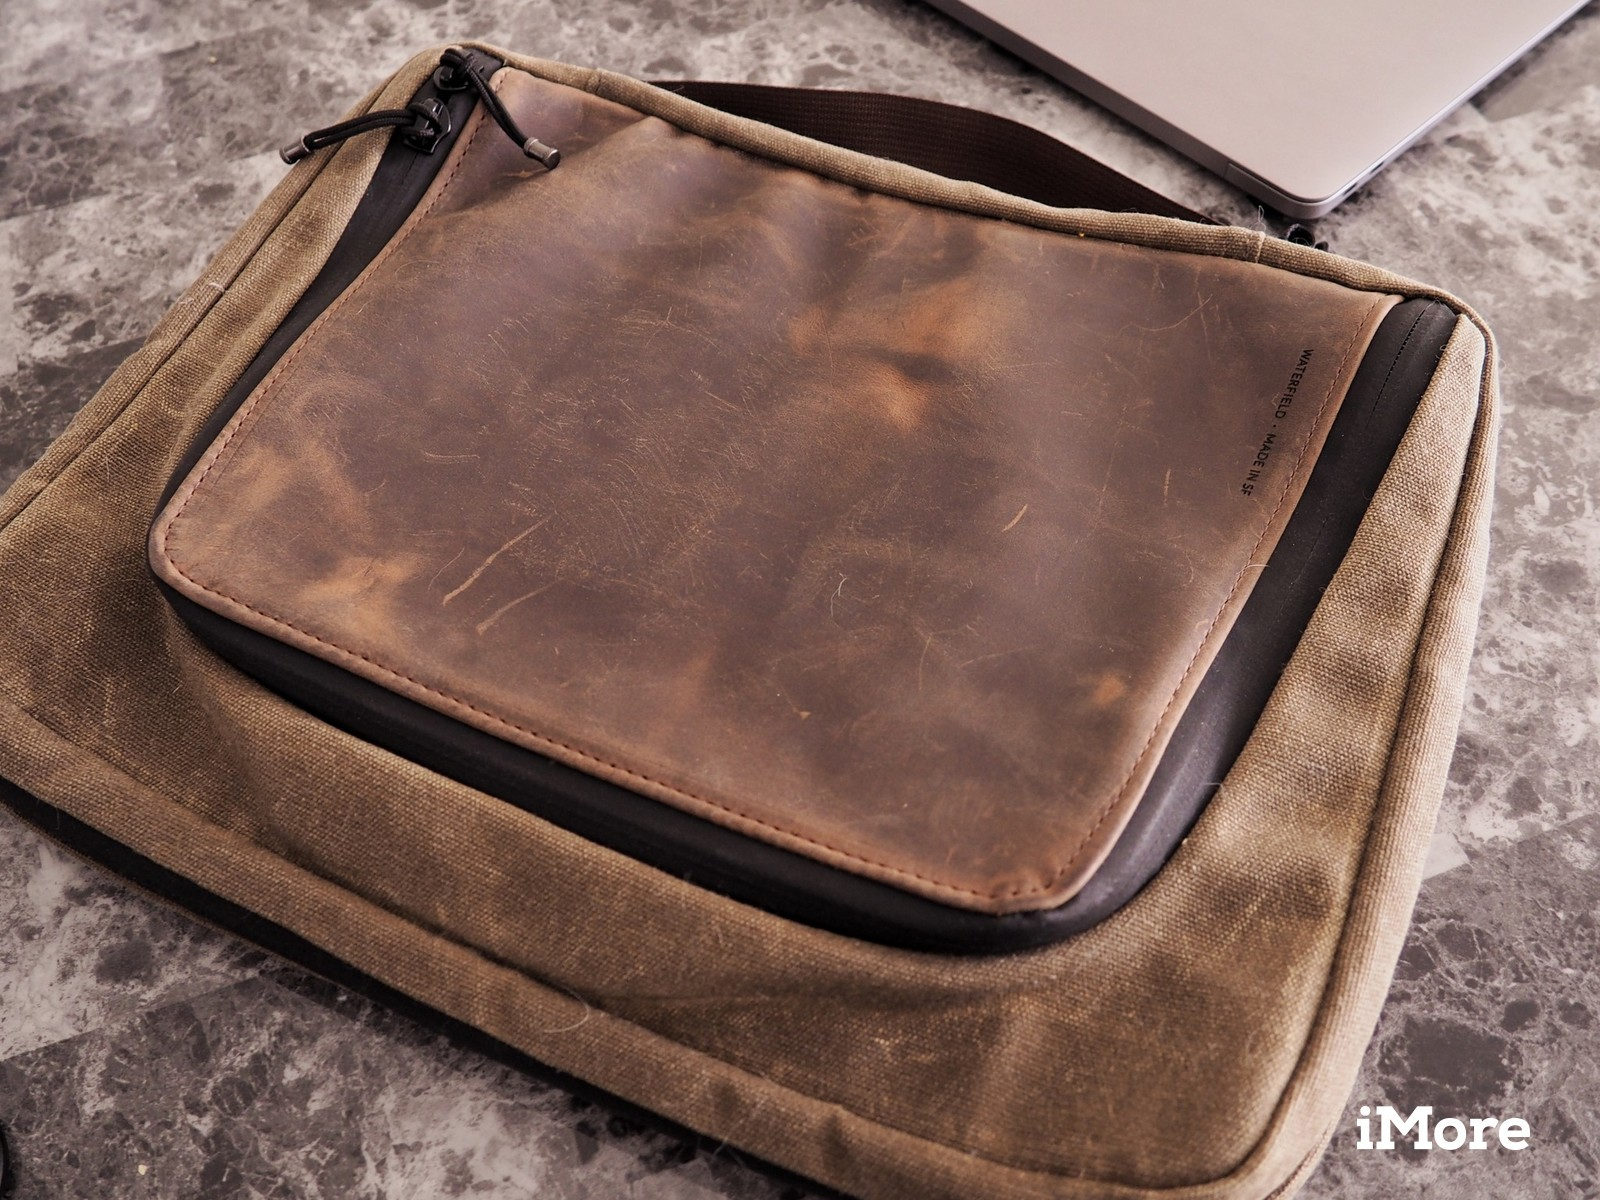 waterfield tech folio plus review leave accessory behind imore accent tablet has been making quality bags pouches and other accessories for years the one its latest gear however